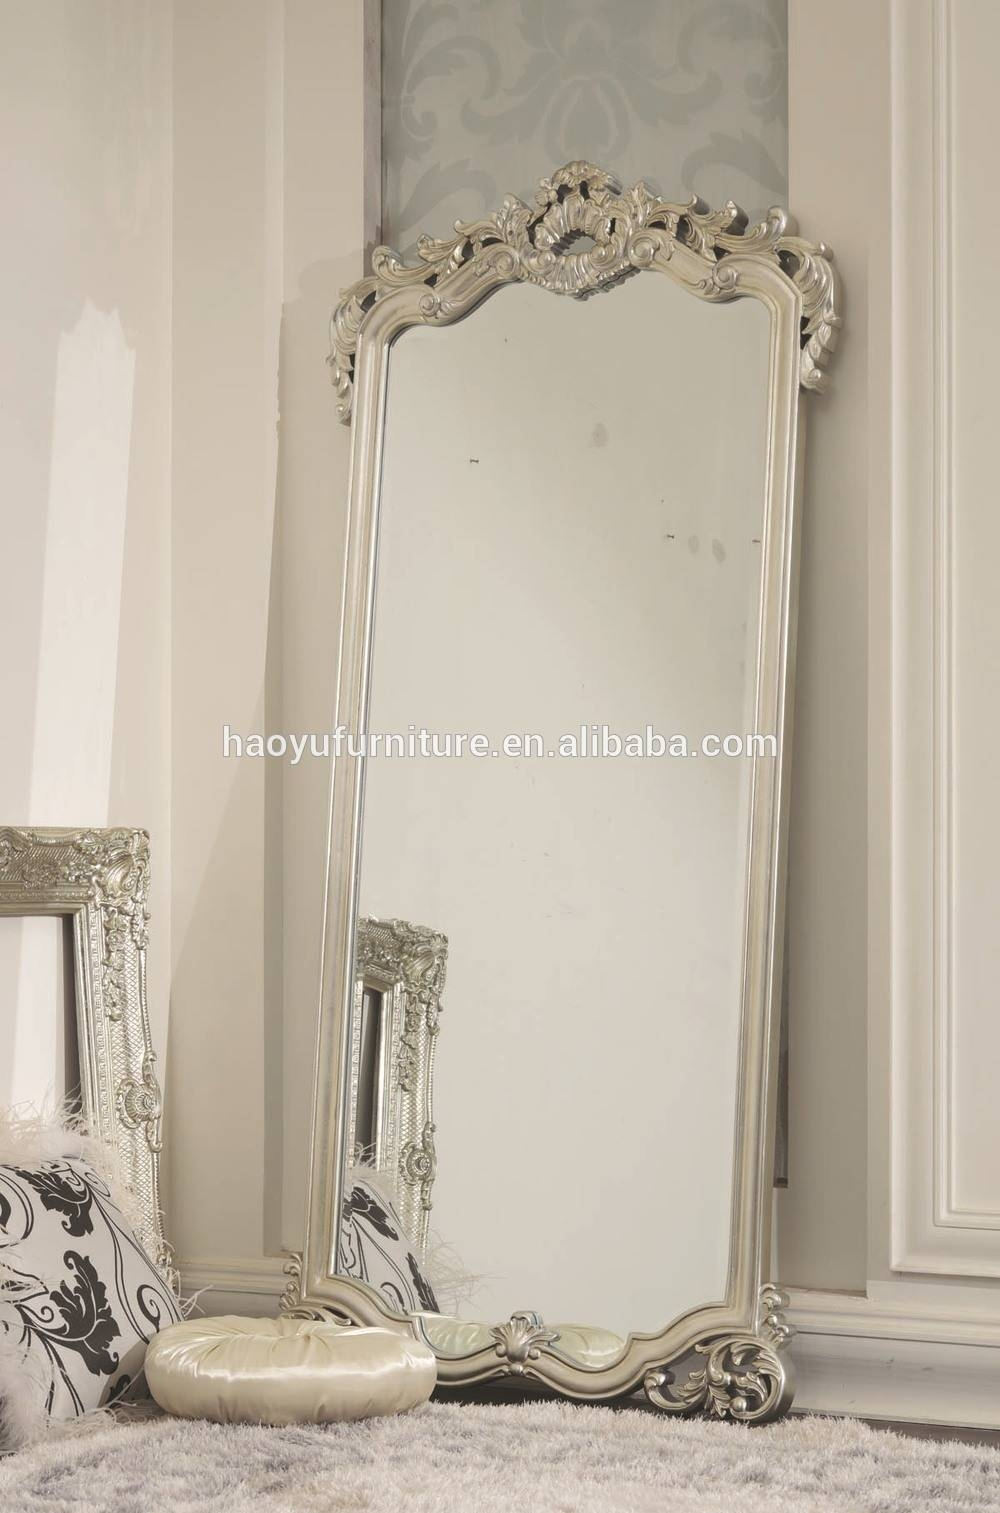 Gda8005 Bedroom Mirror With Cabinet Glass Bedroom Sets Mirror Long For Long Mirrors (View 15 of 15)